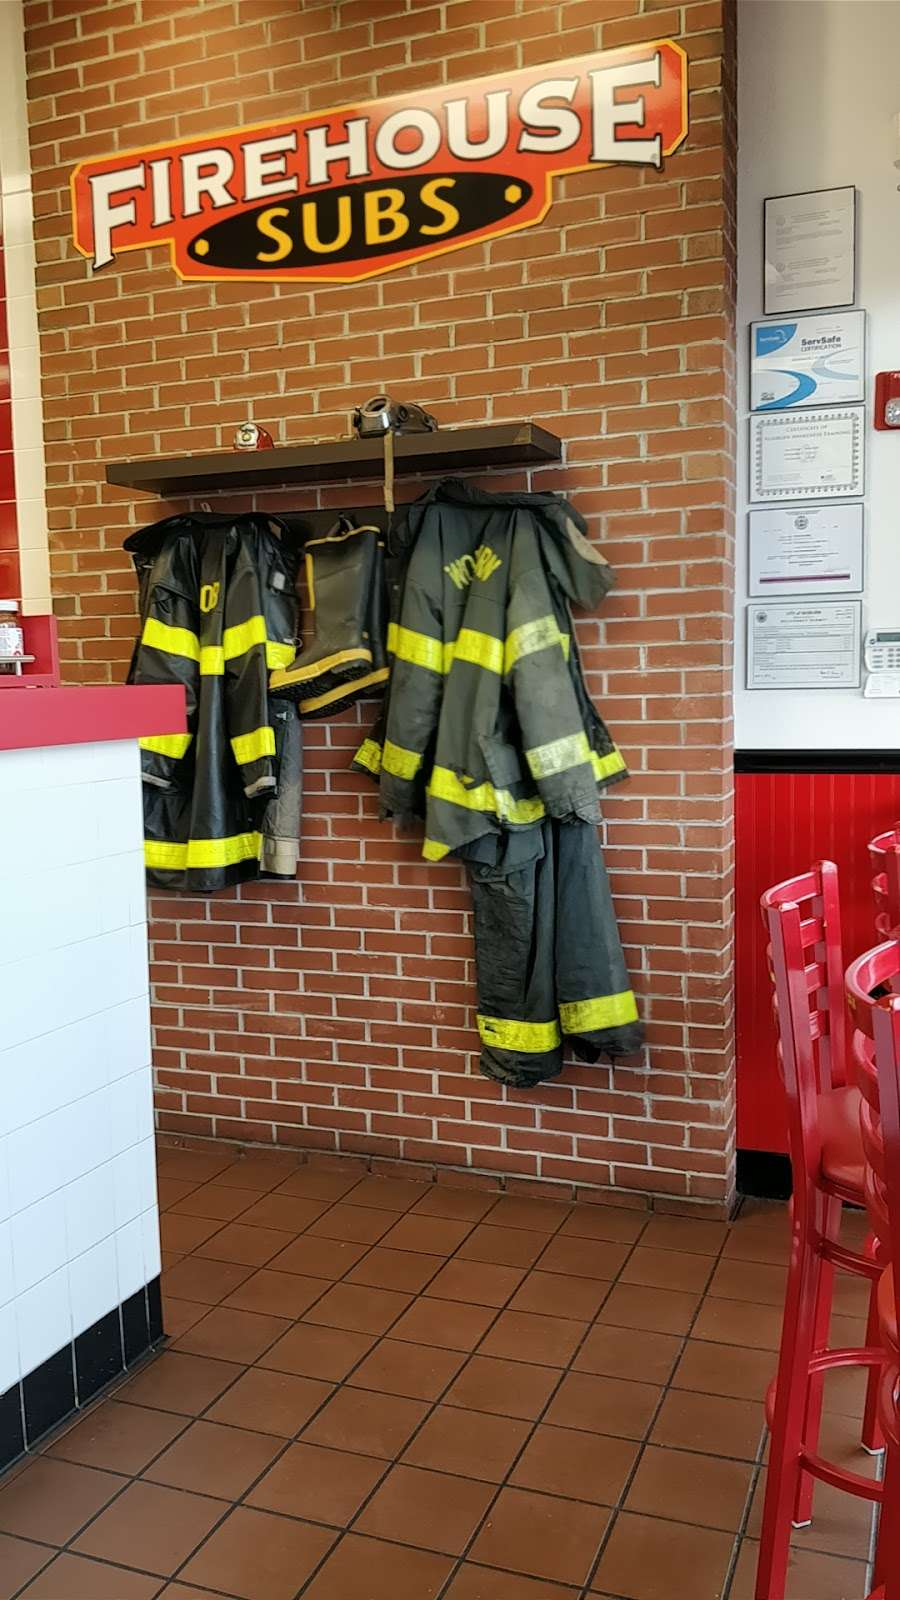 Firehouse Subs - meal delivery  | Photo 3 of 10 | Address: 103 Commerce Way c1, Woburn, MA 01801, USA | Phone: (781) 938-7827